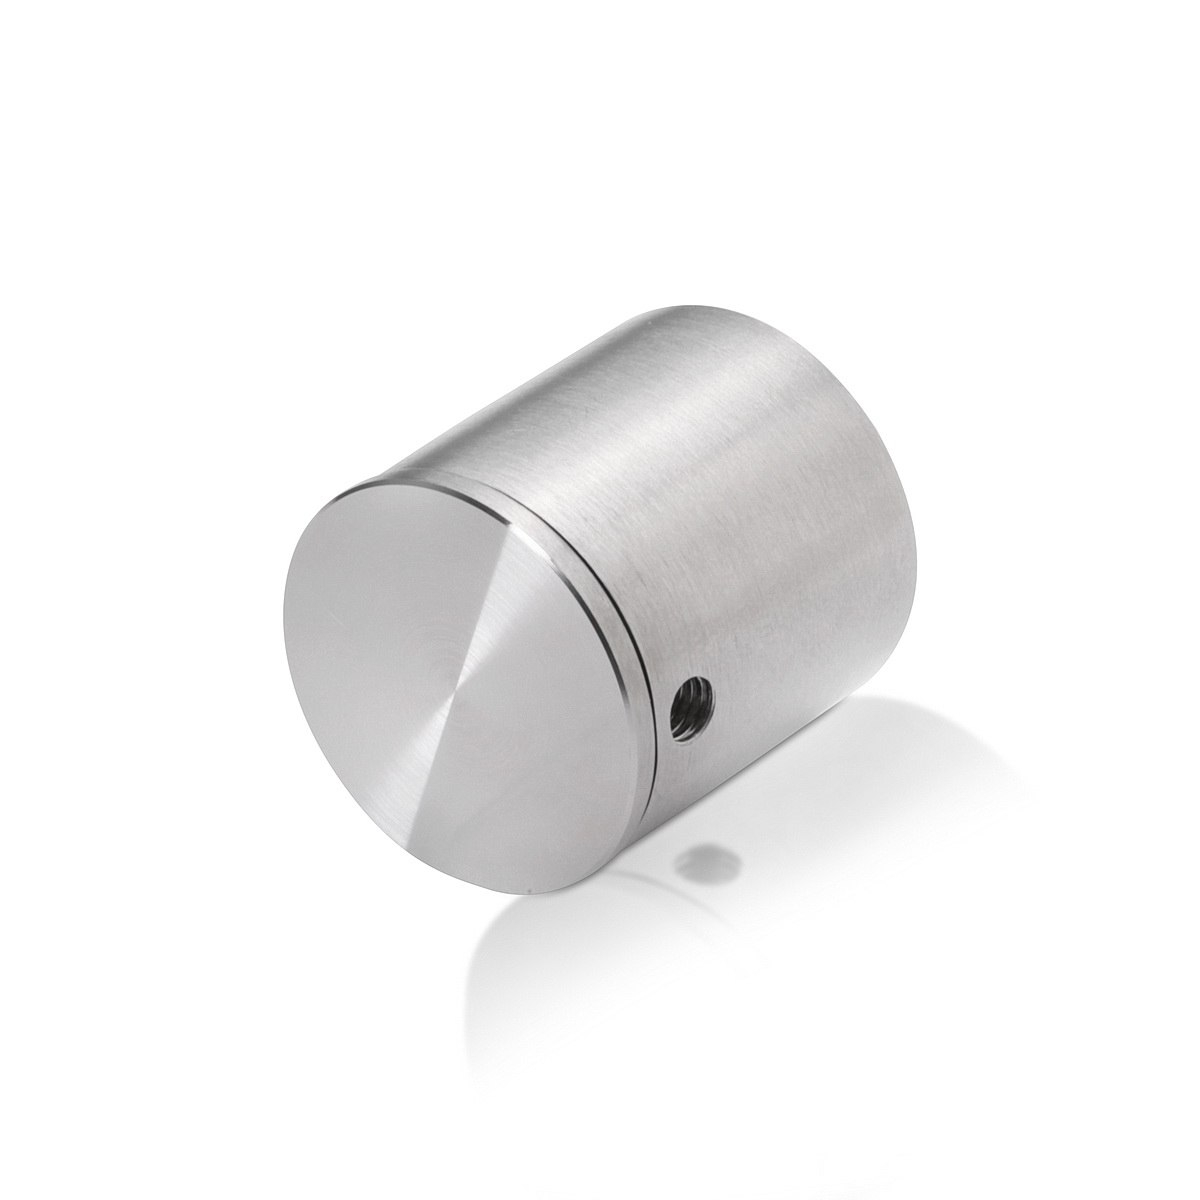 Stainless Steel Glass Standoff, Diameter: 1'', Standoff: 1'', Satin Brushed Finish (Indoor Use Only)